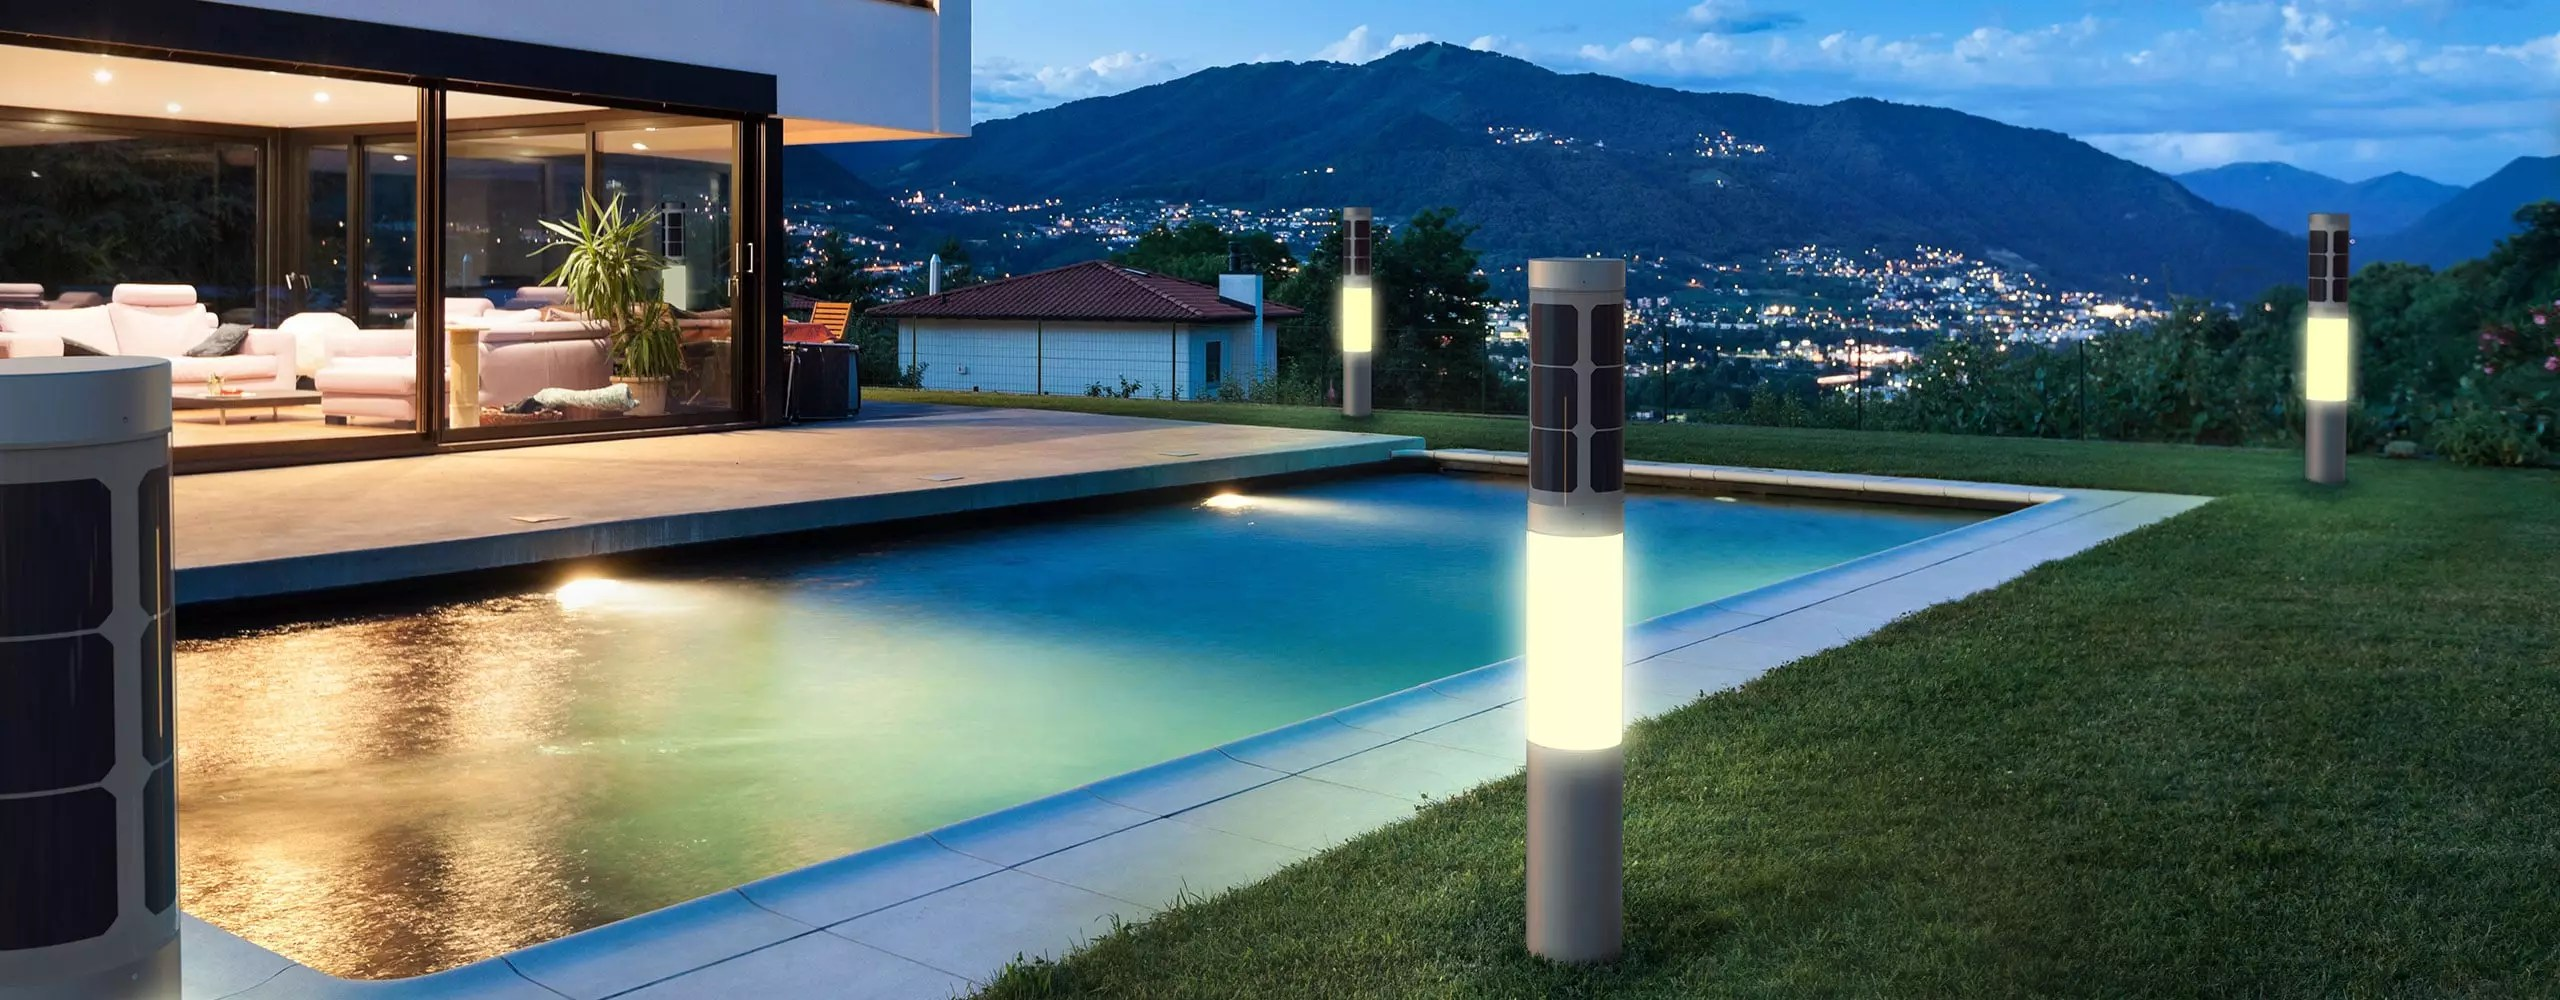 Illuminazione Giardino Solare Solar Outdoor Lighting Nxt Solar Lamp Flexsol Solutions